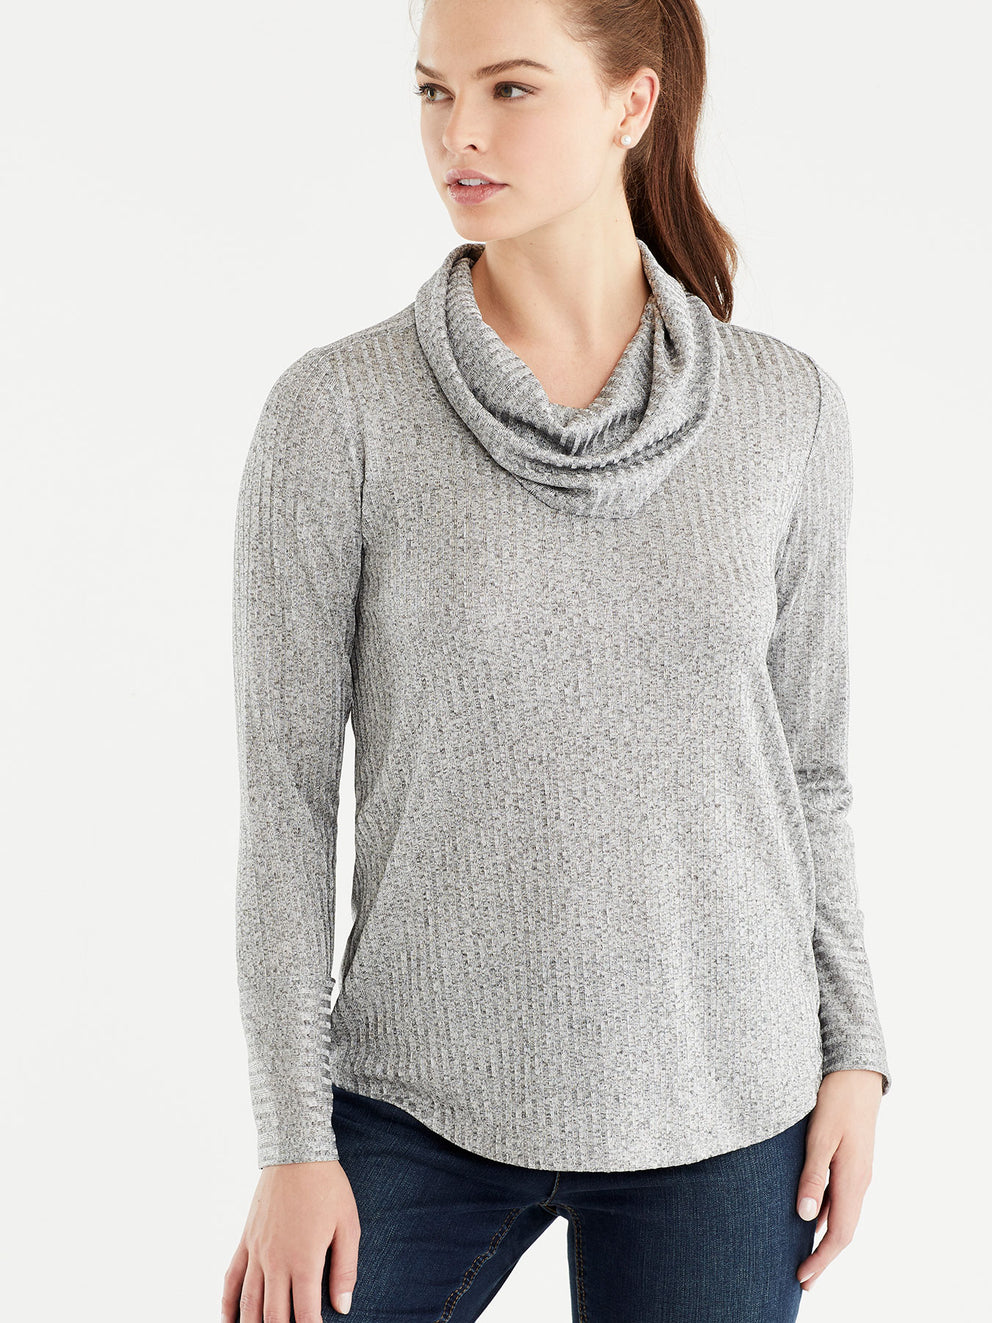 The Jones New York Marled Rib Cowl Neck Top in color Grey - Image Position 1